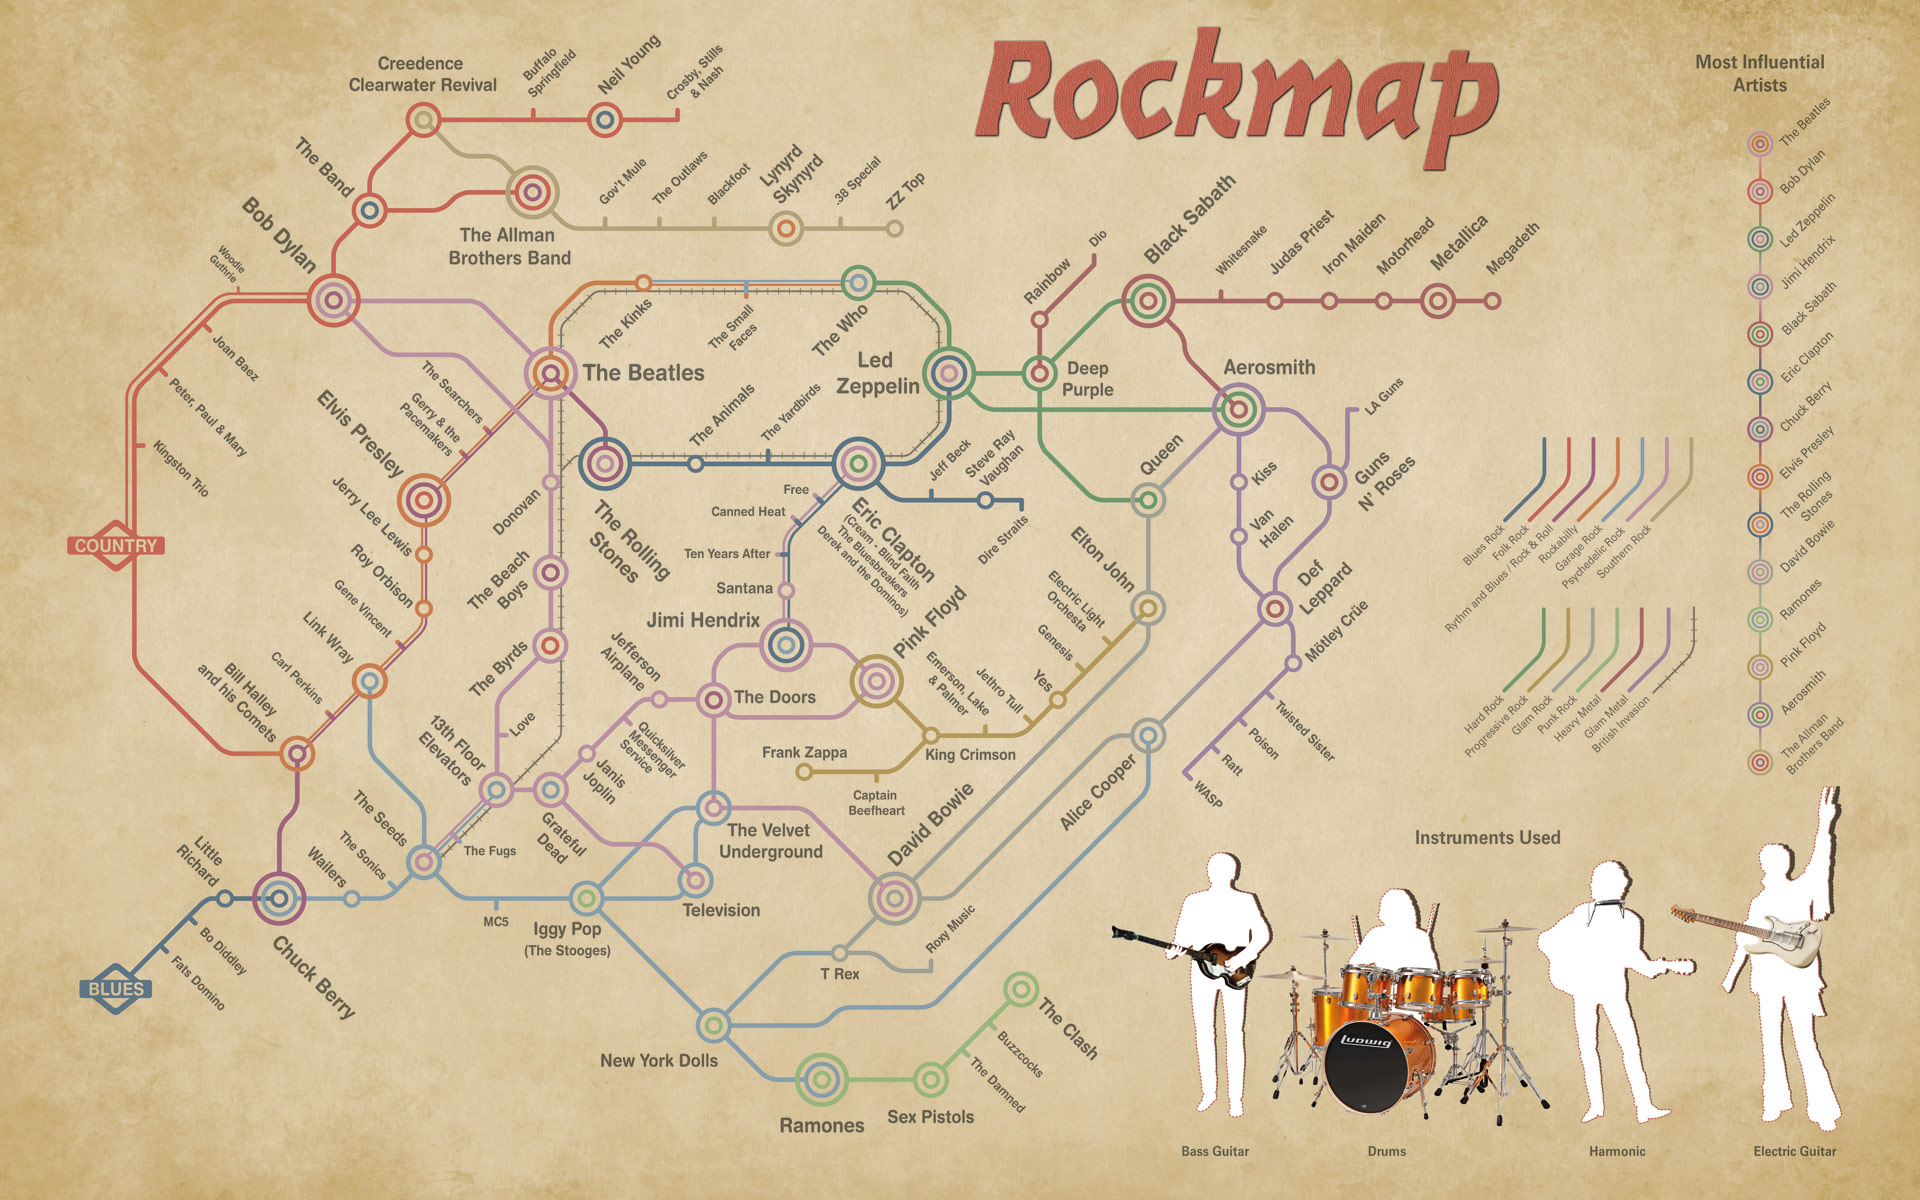 The Subway Map of Rock City